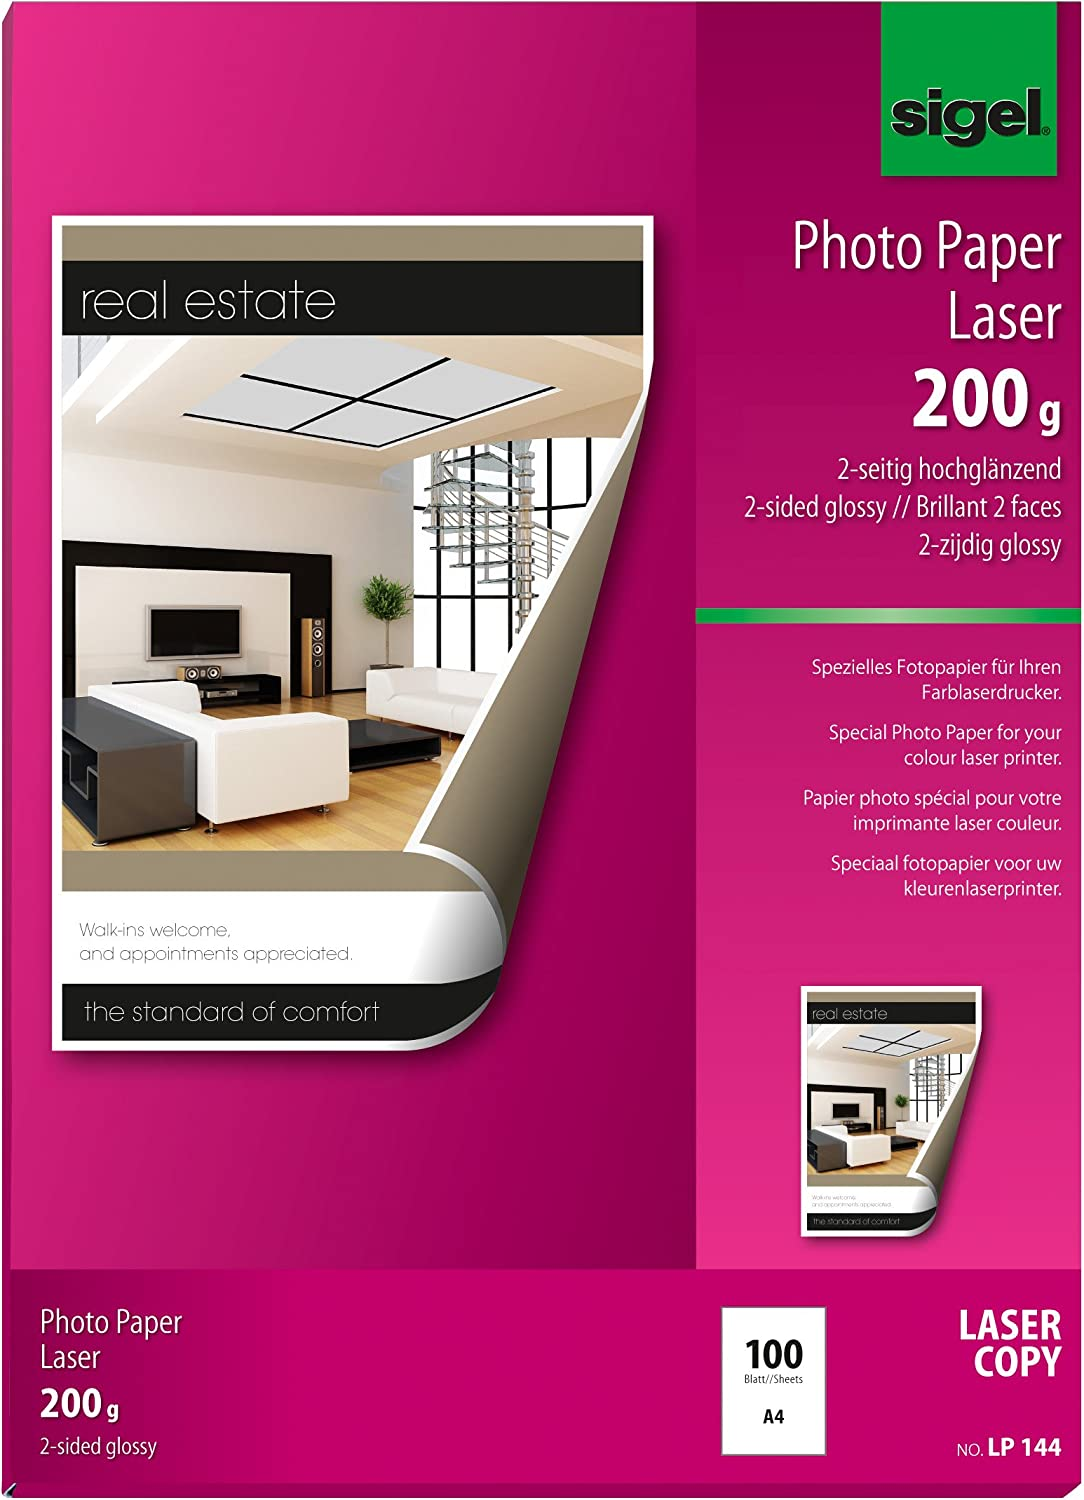 Sigel LP144 Photo Paper Sale for Colour Copier 2-sided Max 57% OFF glossy Laser